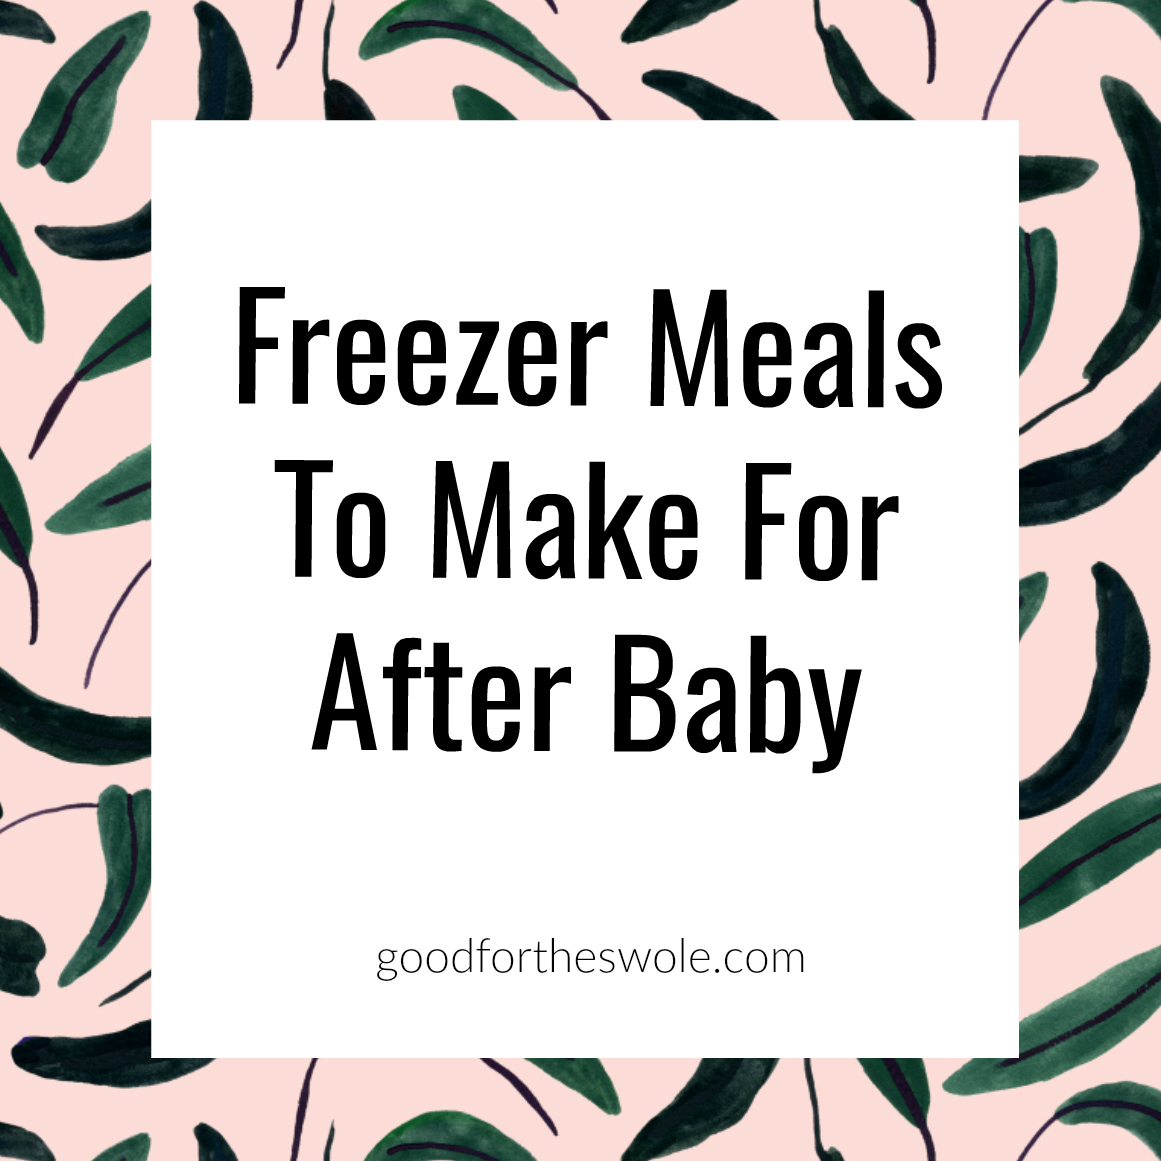 Freezer Meals To Make For After Baby || goodfortheswole.com